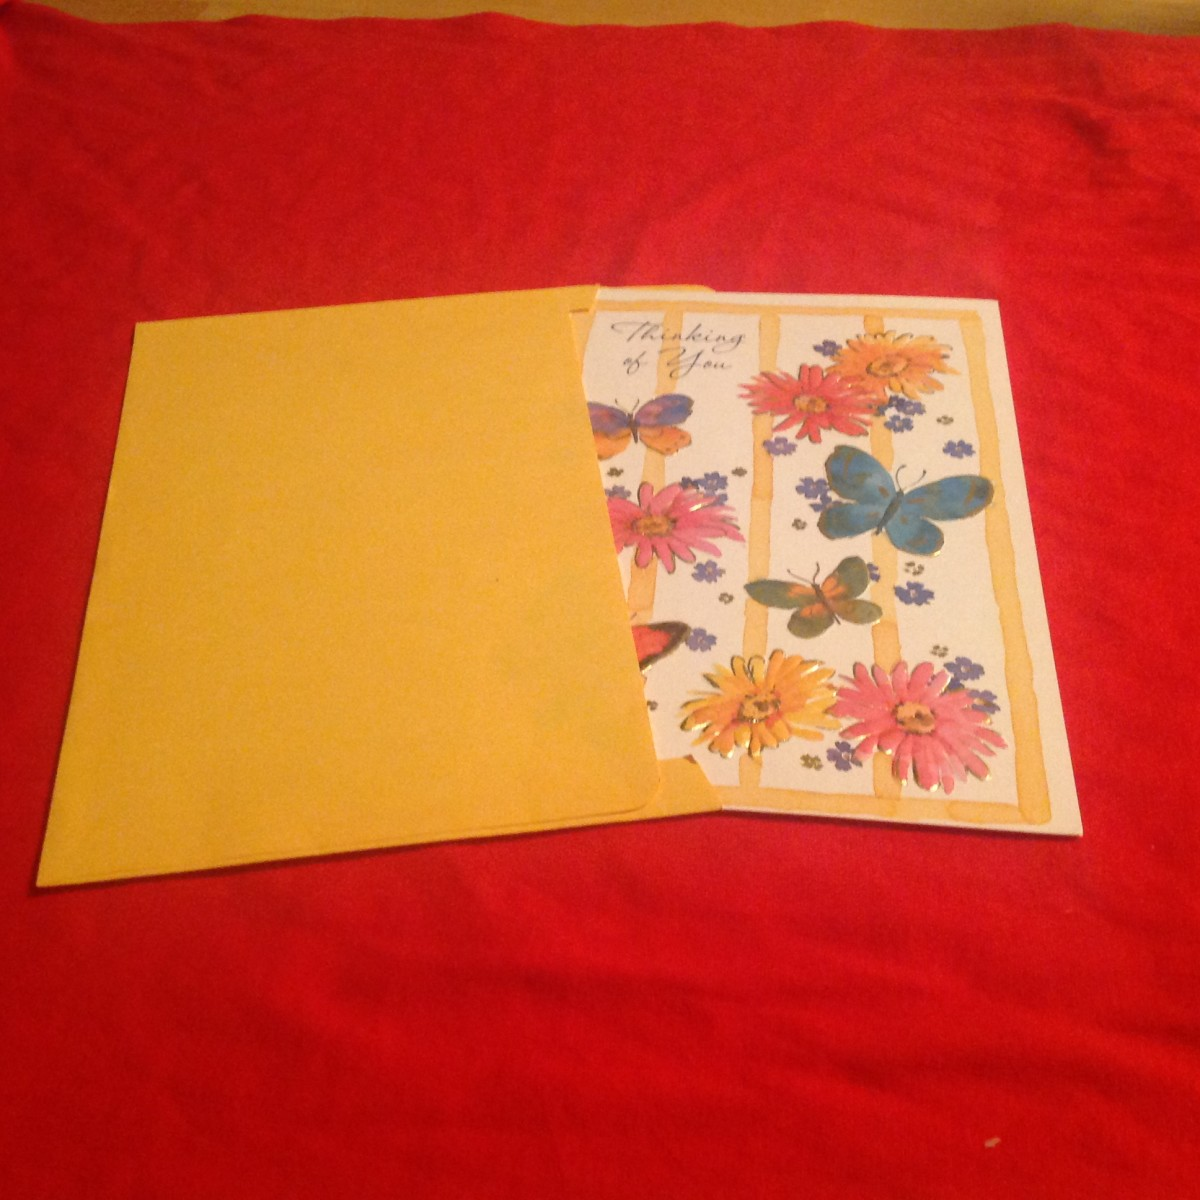 Greeting Cards: The Correct Way to Put Them in an Envelope